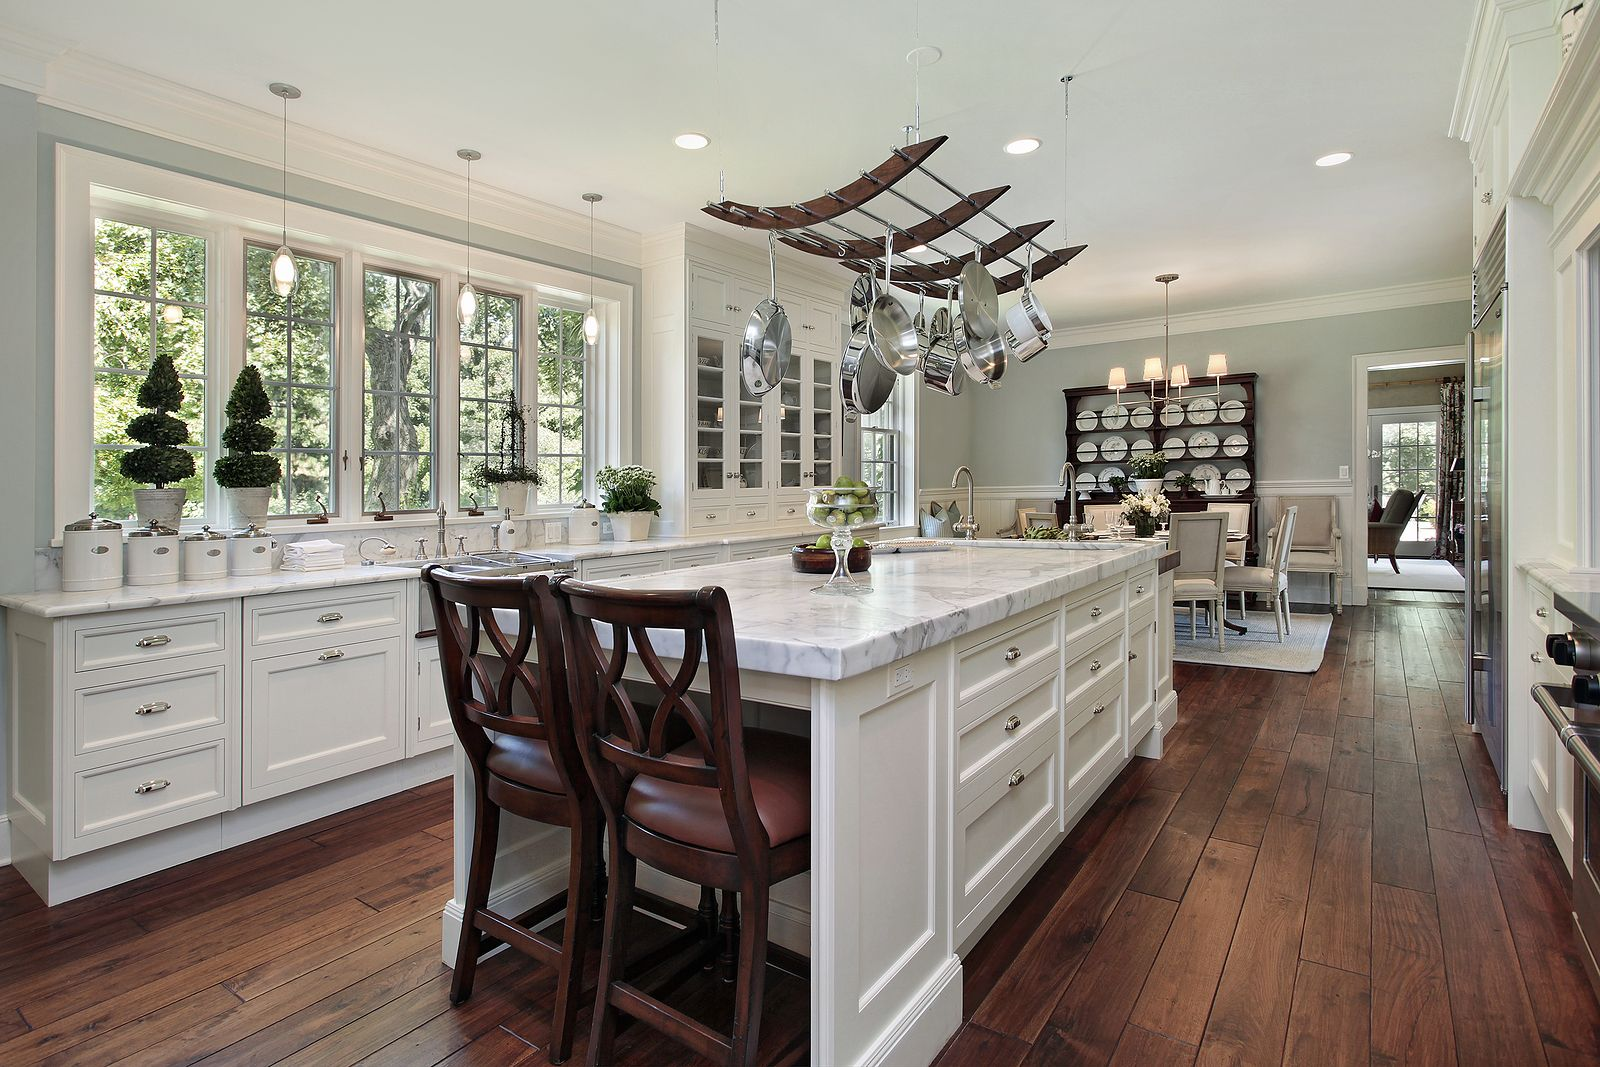 Wood Floor In The Kitchen Dark Floors In Beach Houses Kitchen Decorating Design Ideas With